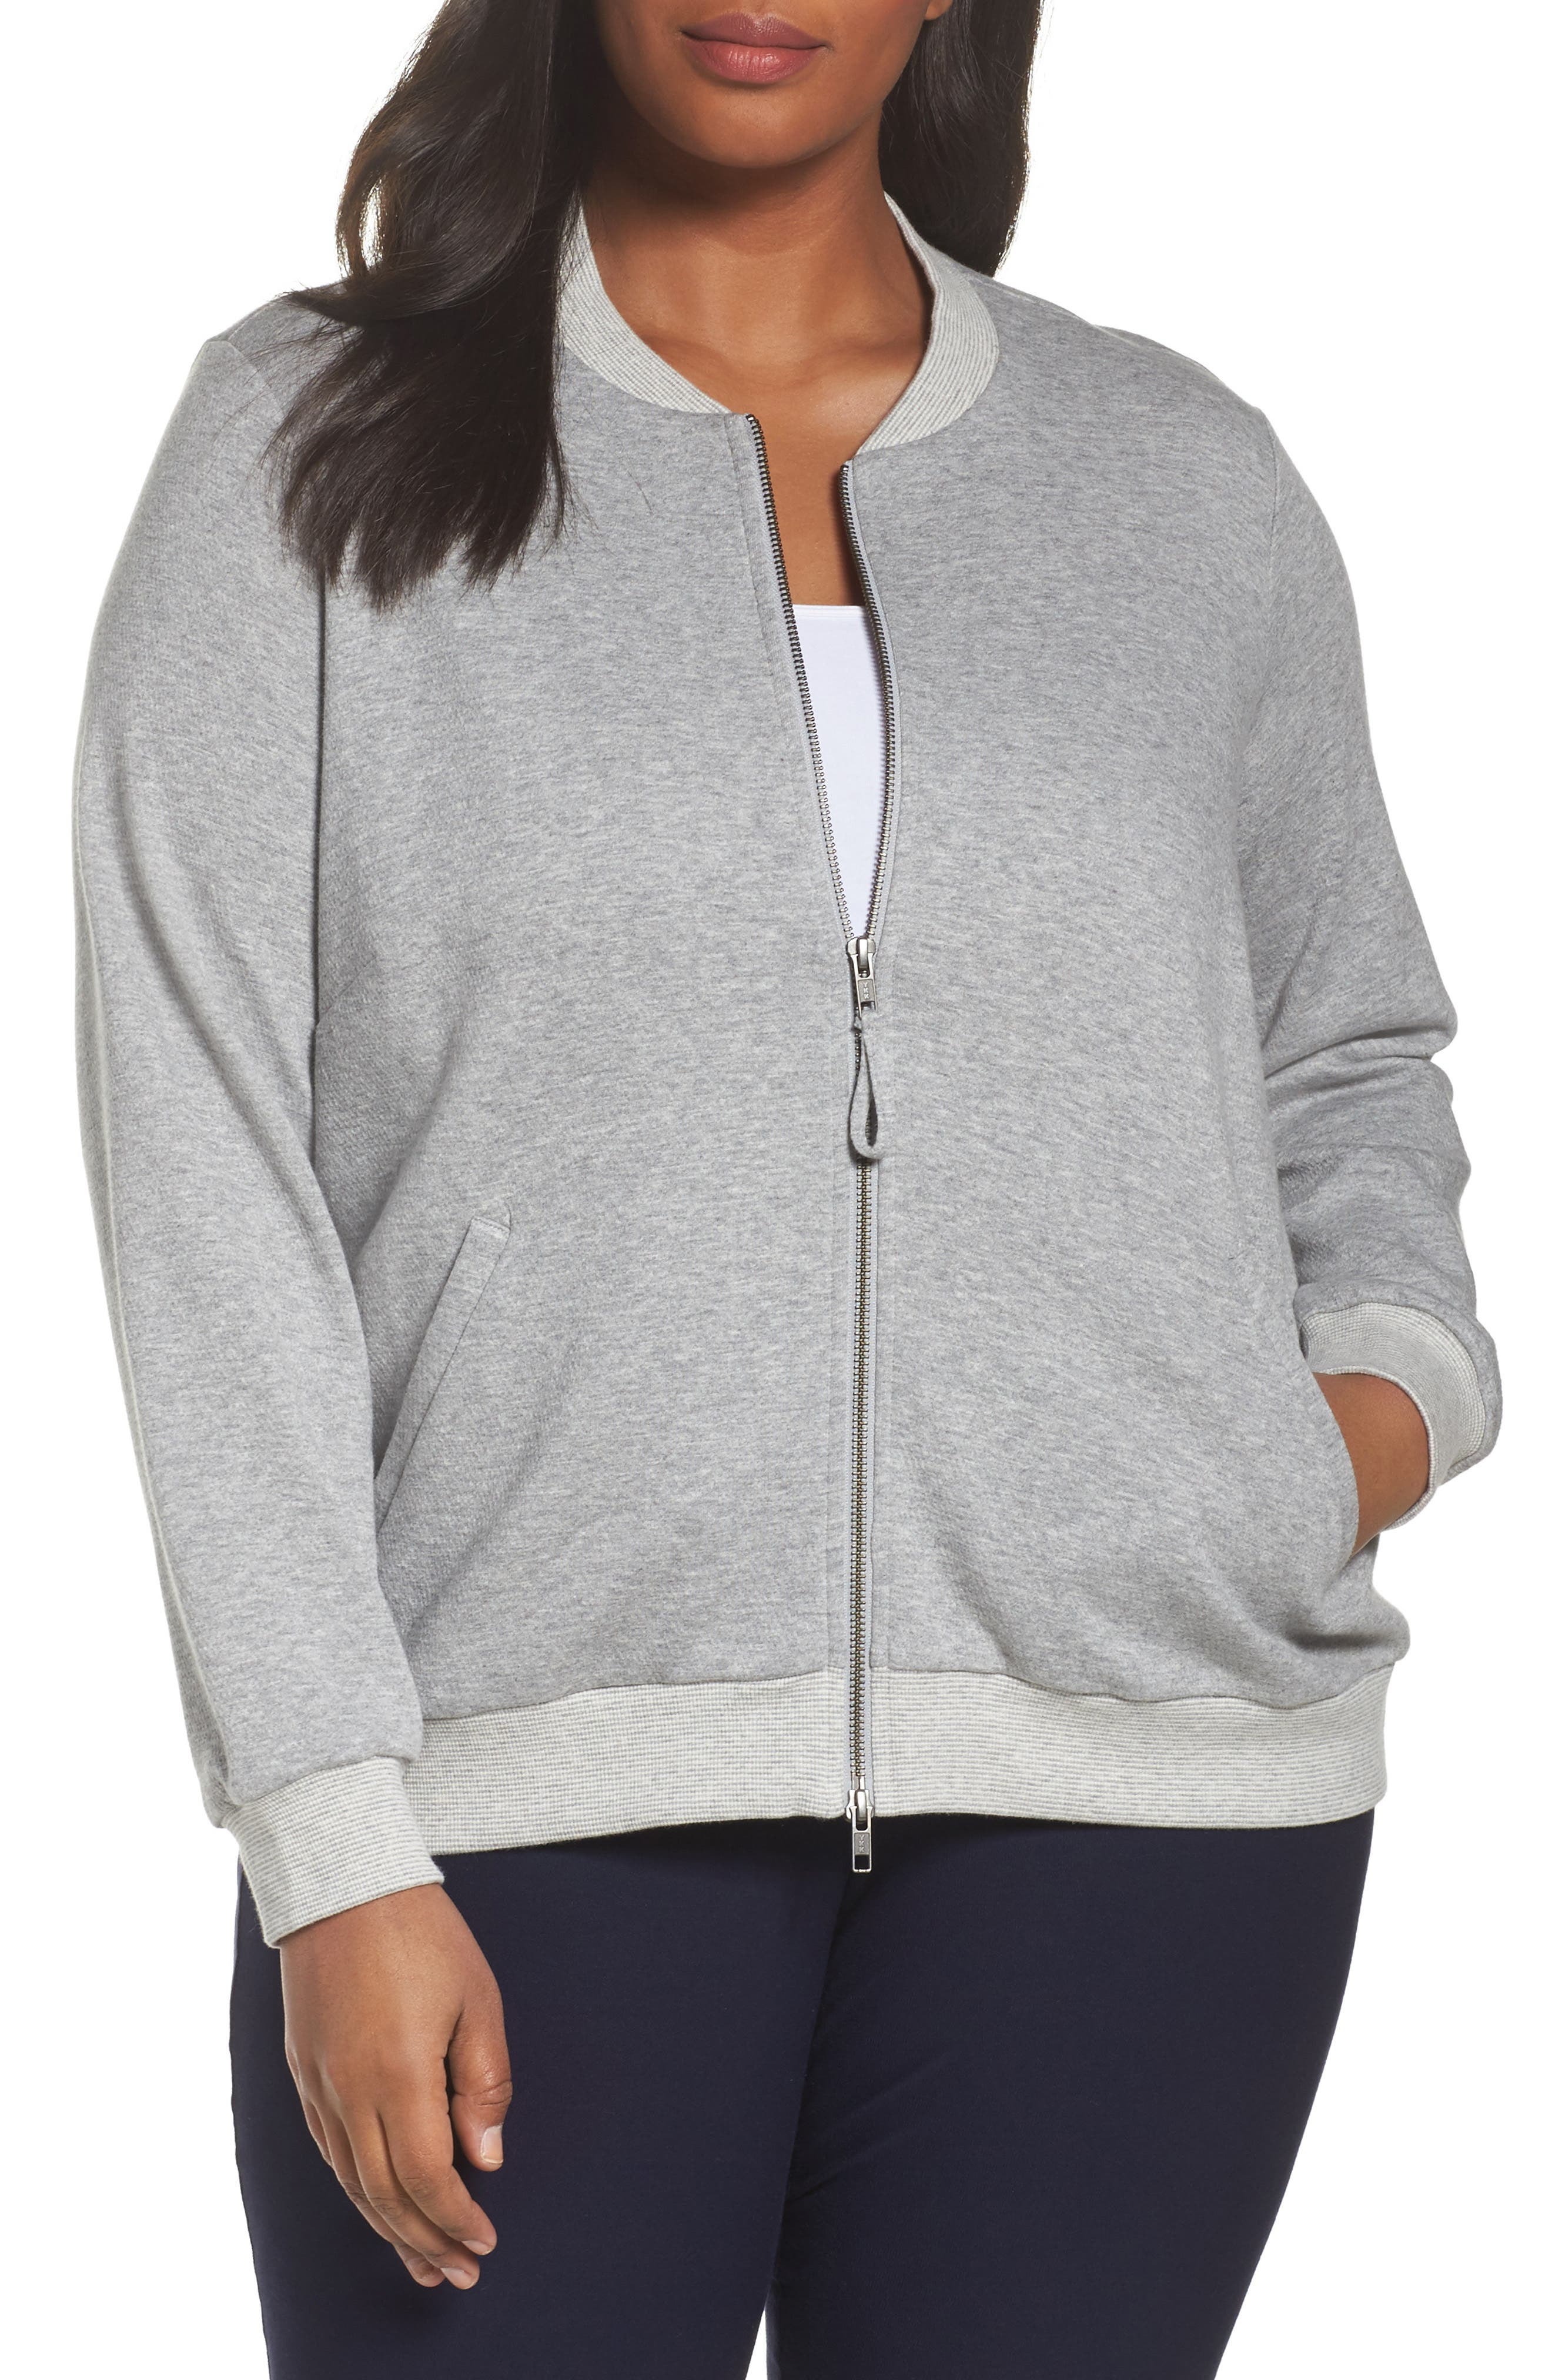 Alternate Image 1 Selected - Eileen Fisher Knit Bomber Jacket (Plus Size)